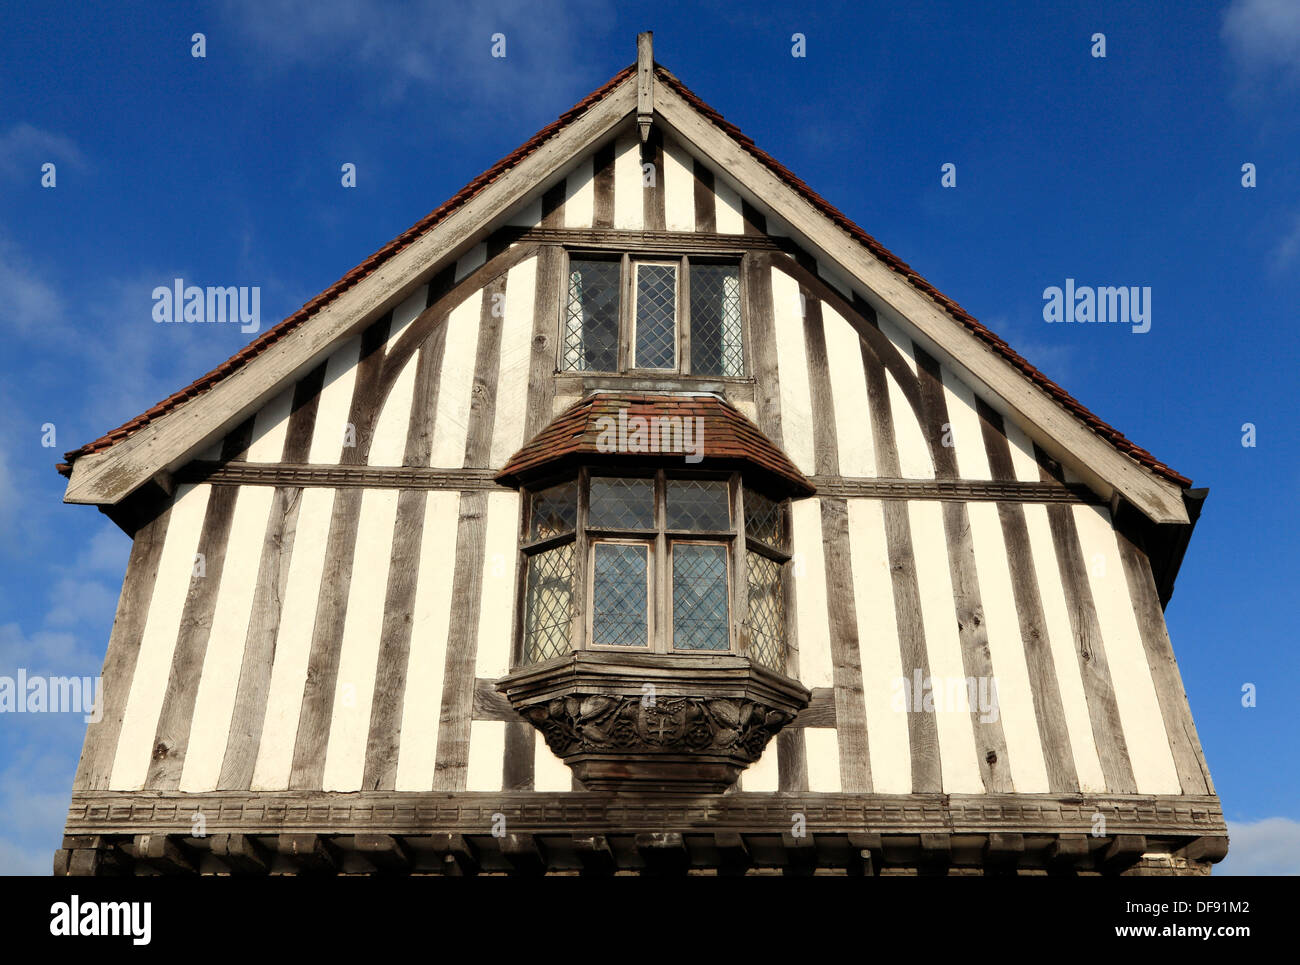 Eye, Suffolk, medieval Guildhall, detail, England UK timbered building buildings - Stock Image